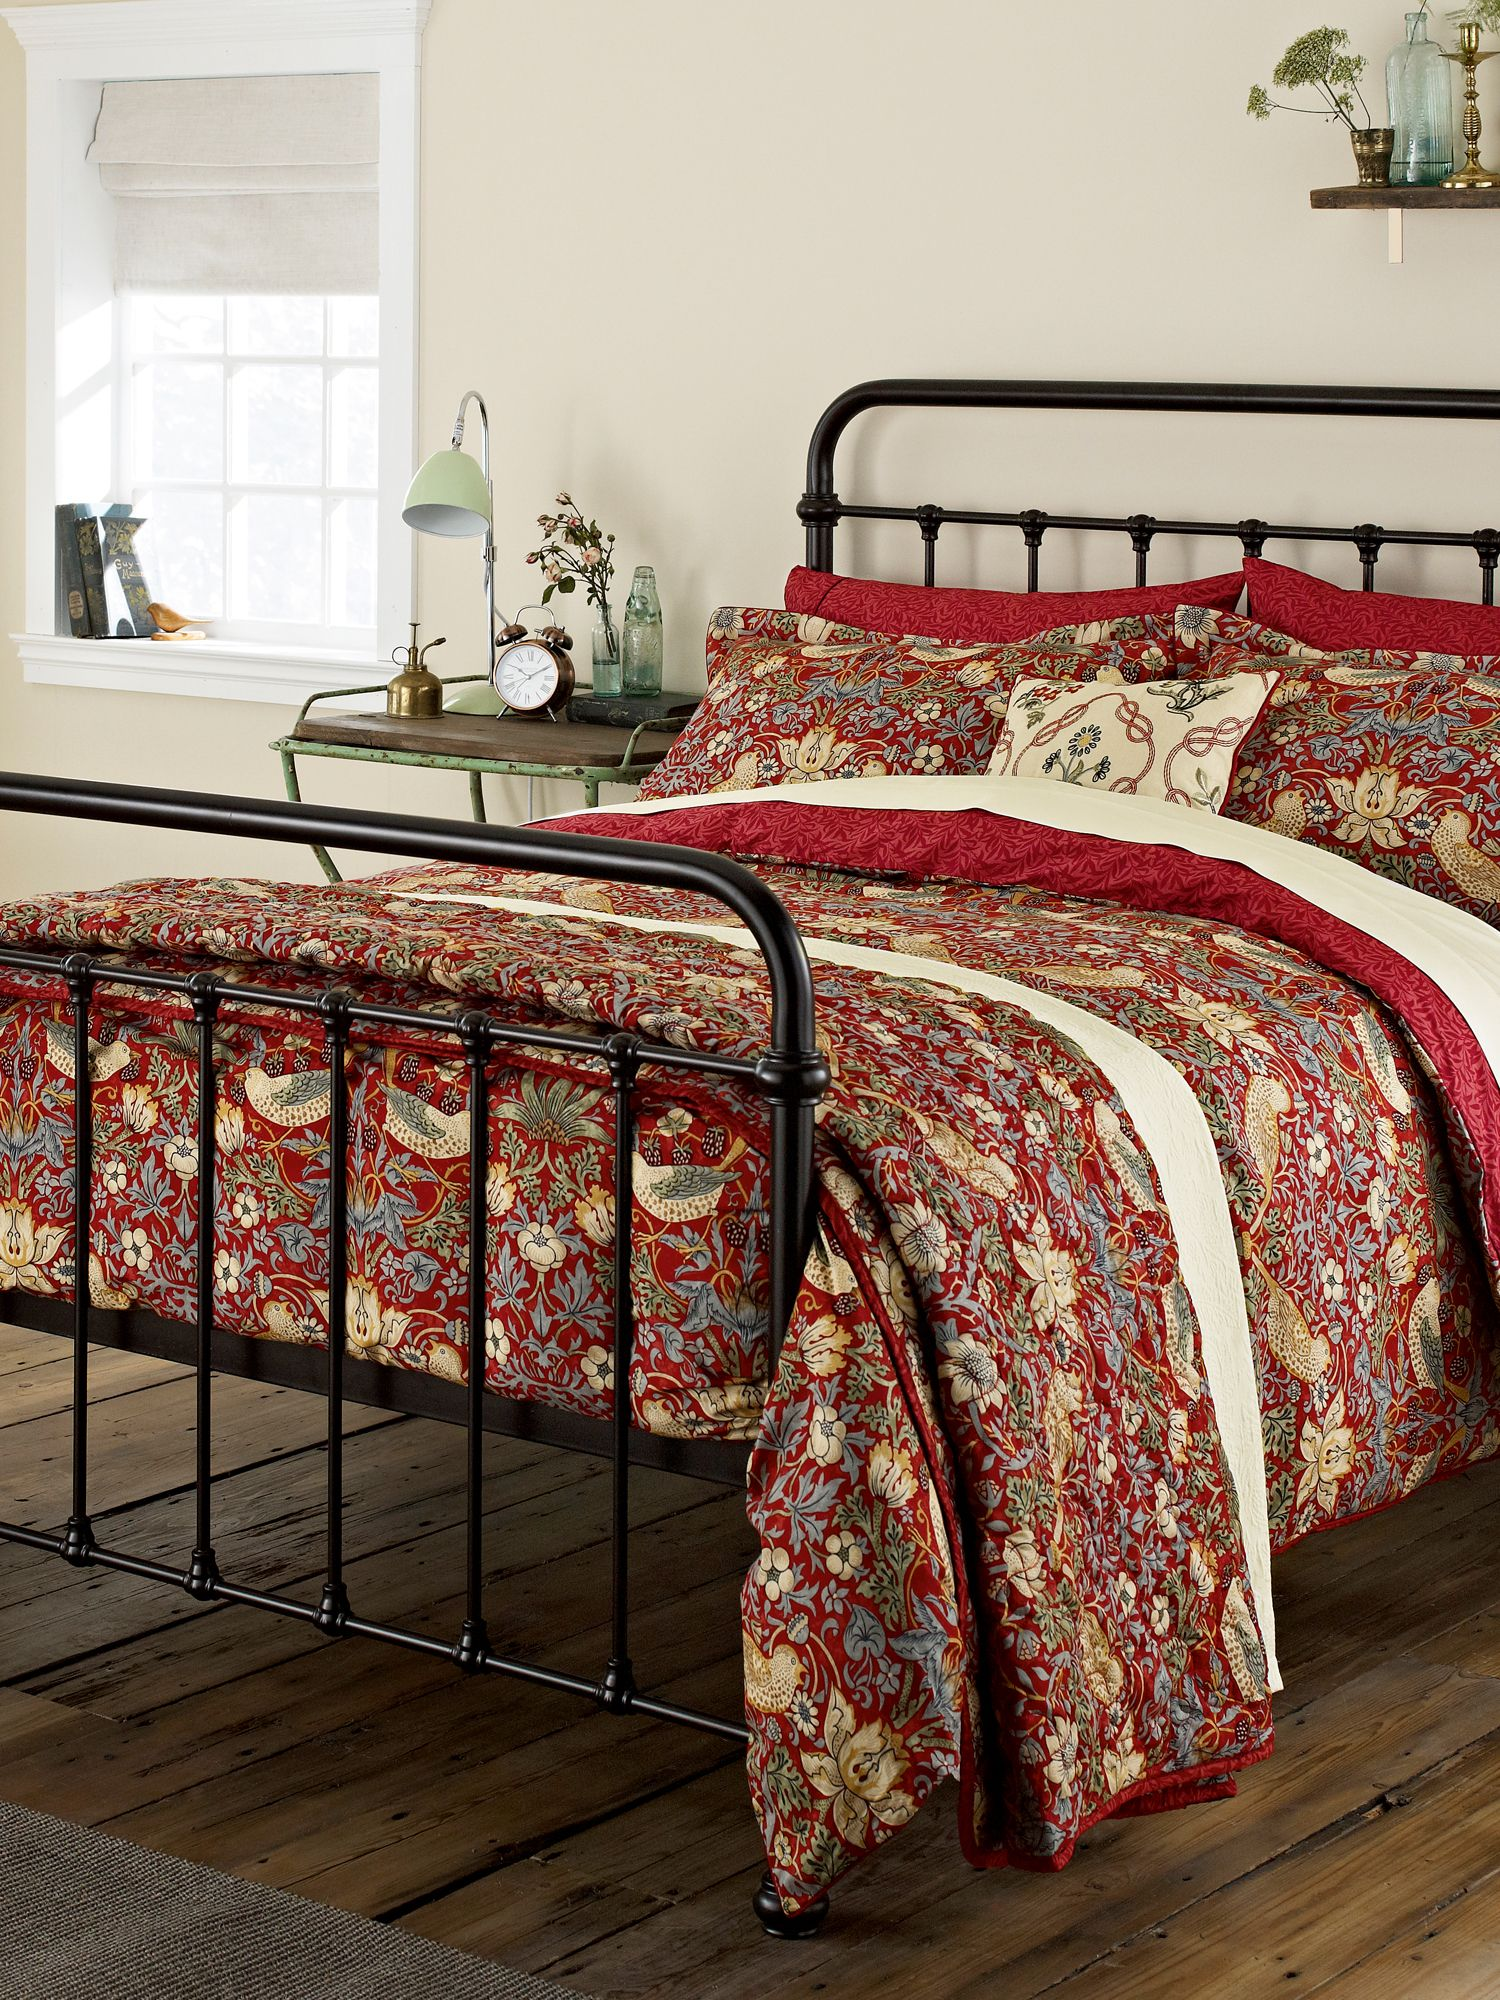 morris co strawberry thief quilted throw crimson. Black Bedroom Furniture Sets. Home Design Ideas